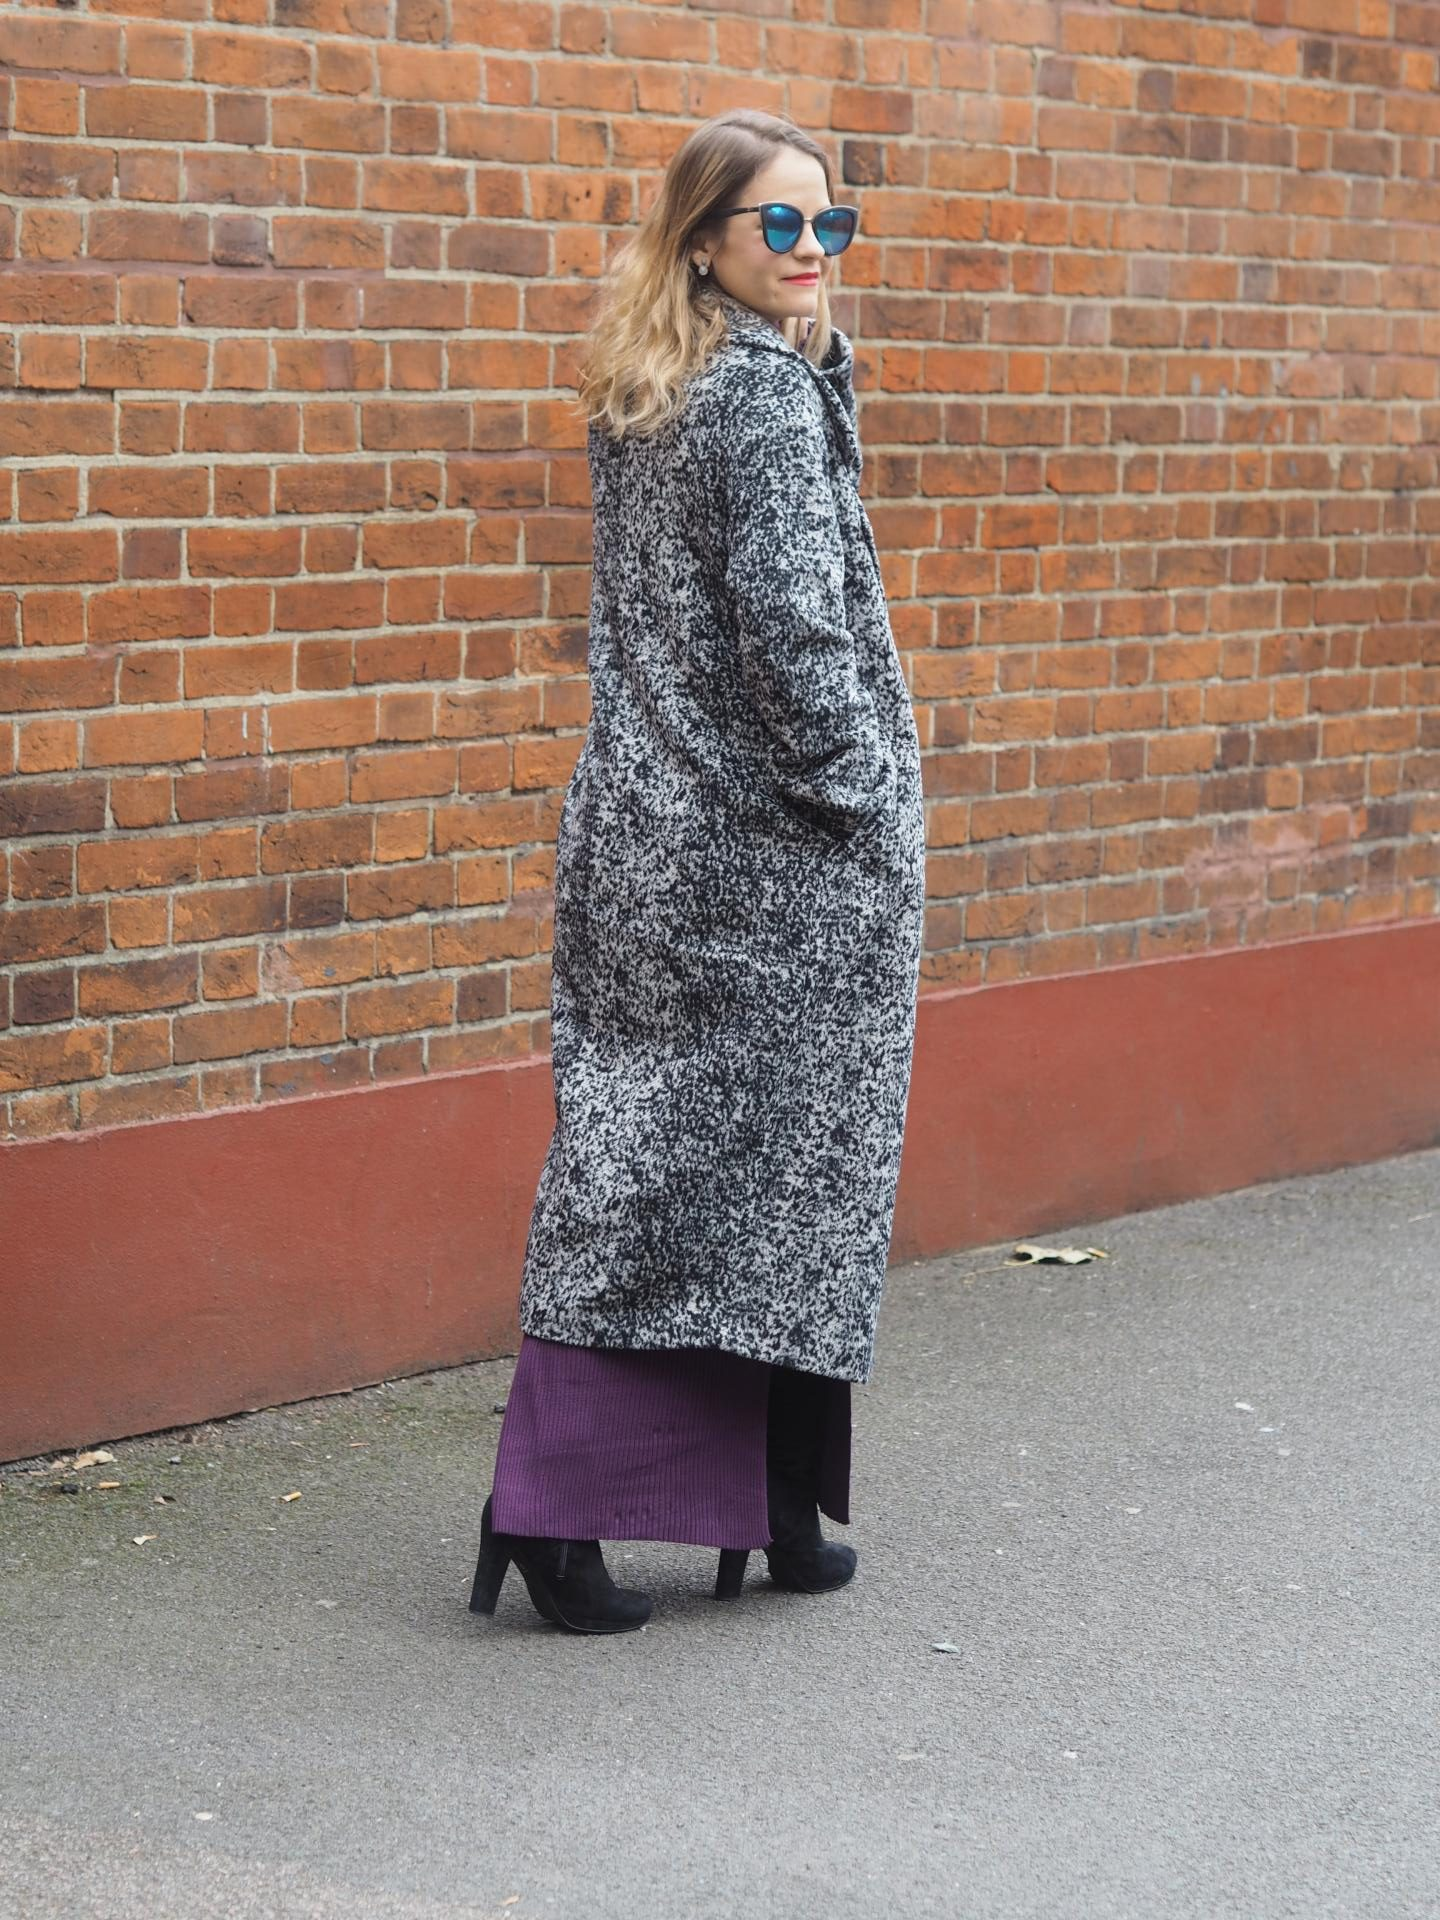 Fashion Blogger in new coat for fall